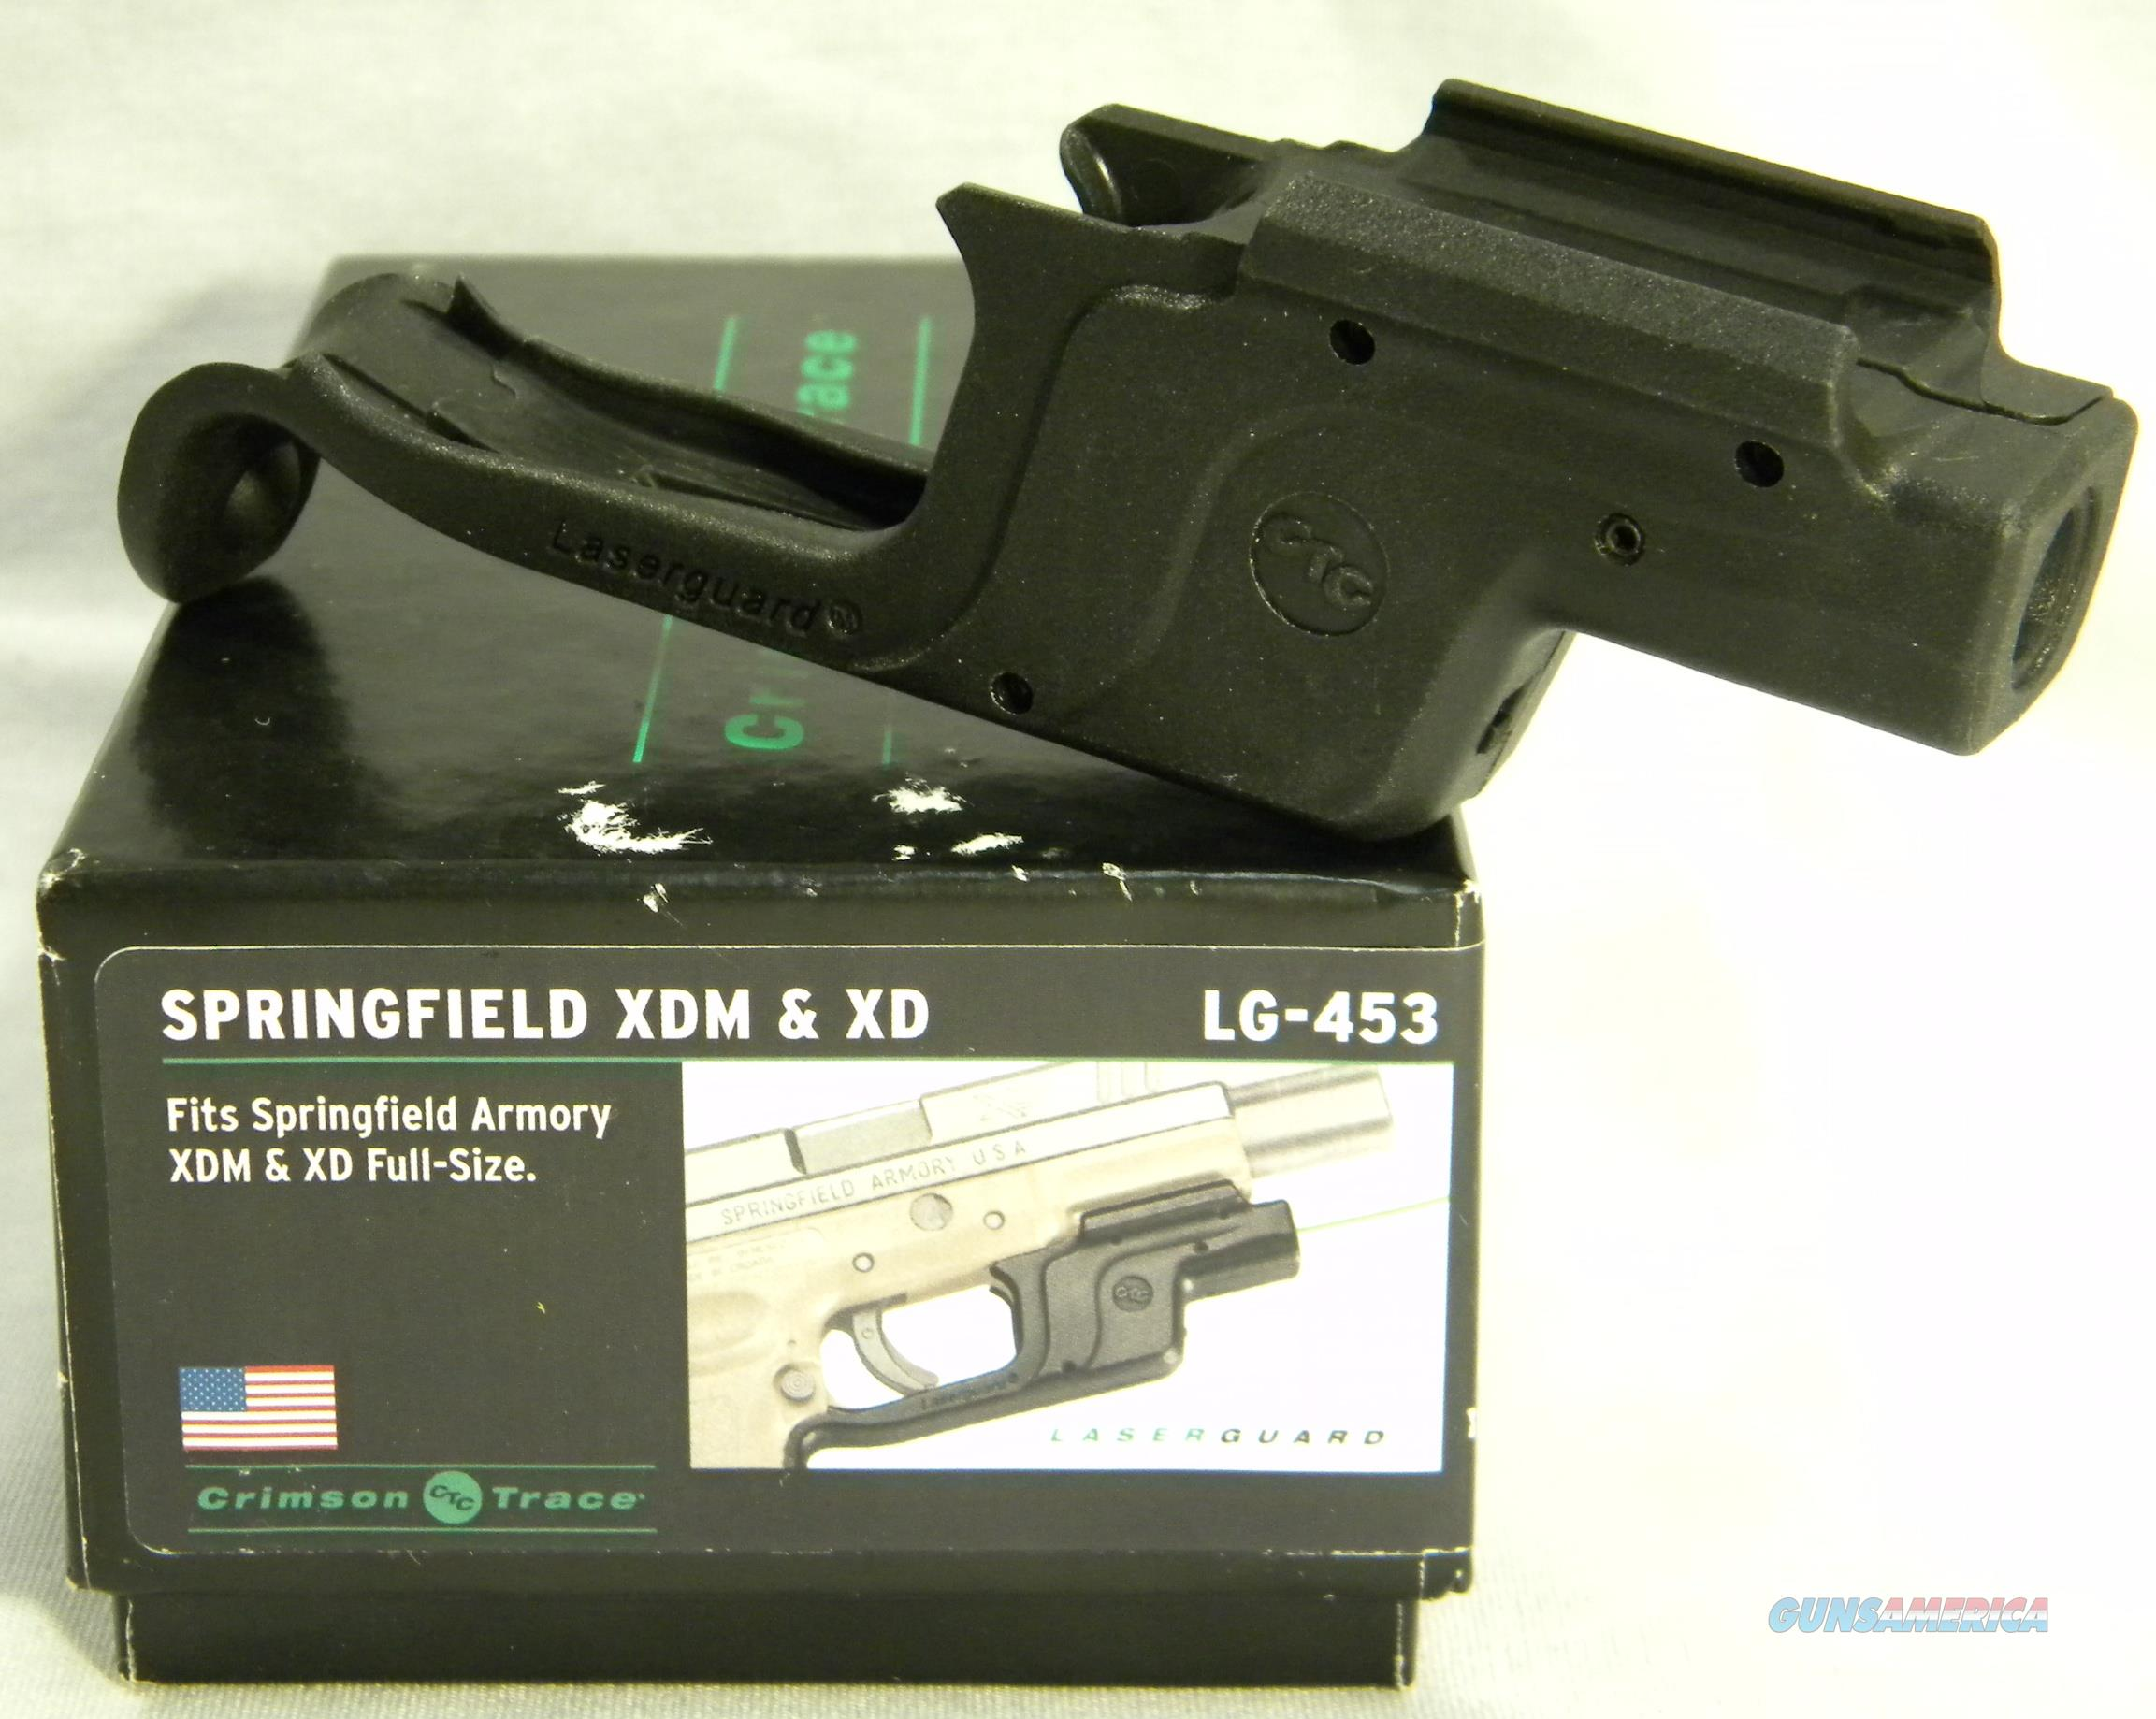 Crimson Trace LG-453 Green Laser For Springfield Full-Sized XD & XDM, Crimson Trace Lasers Inventory Reduction Sale!  Non-Guns > Scopes/Mounts/Rings & Optics > Non-Scope Optics > Other